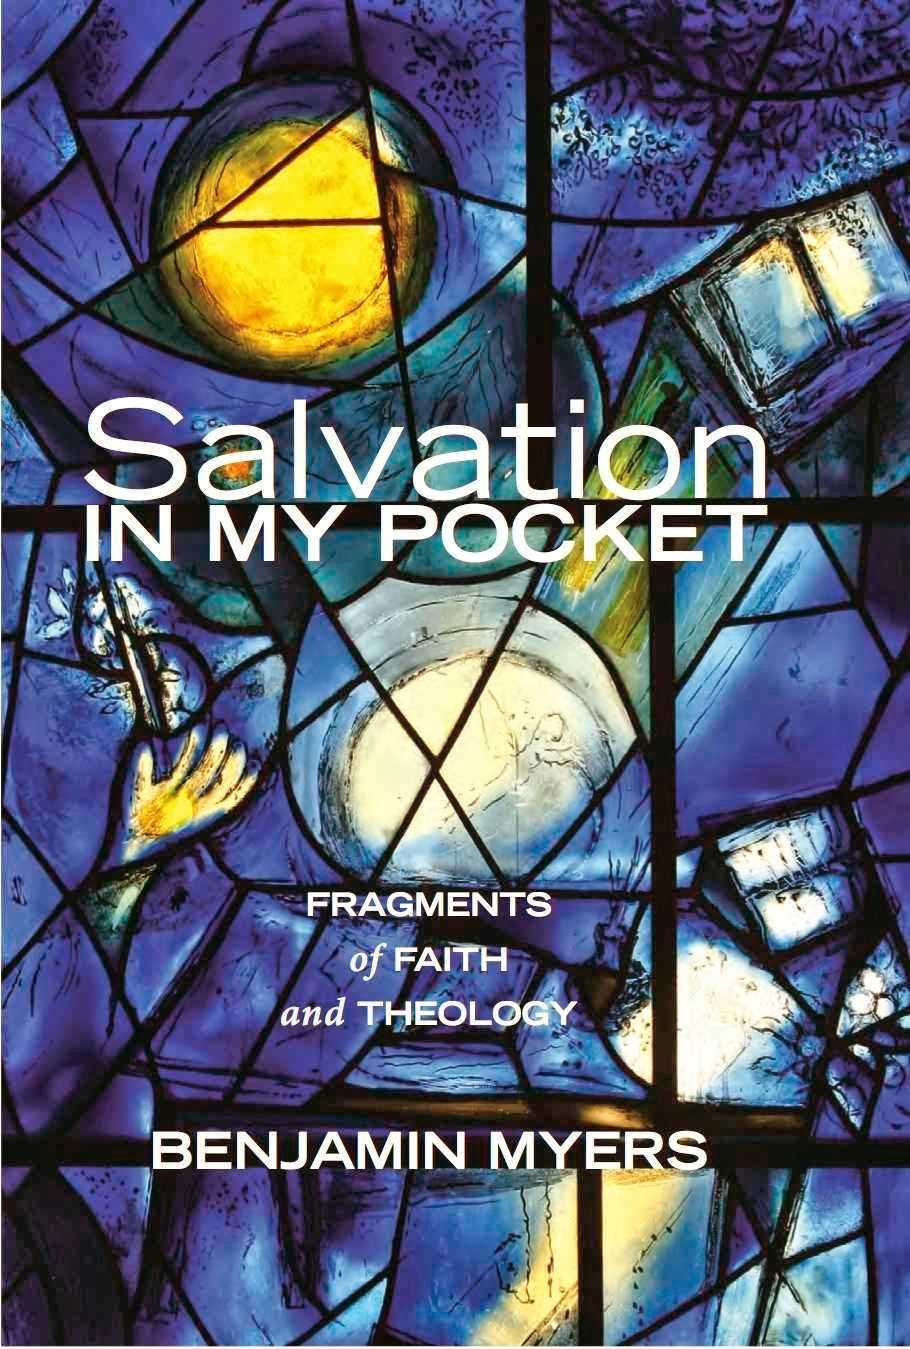 benjamin myers, salvation in my pocket: fragments of faith and theology